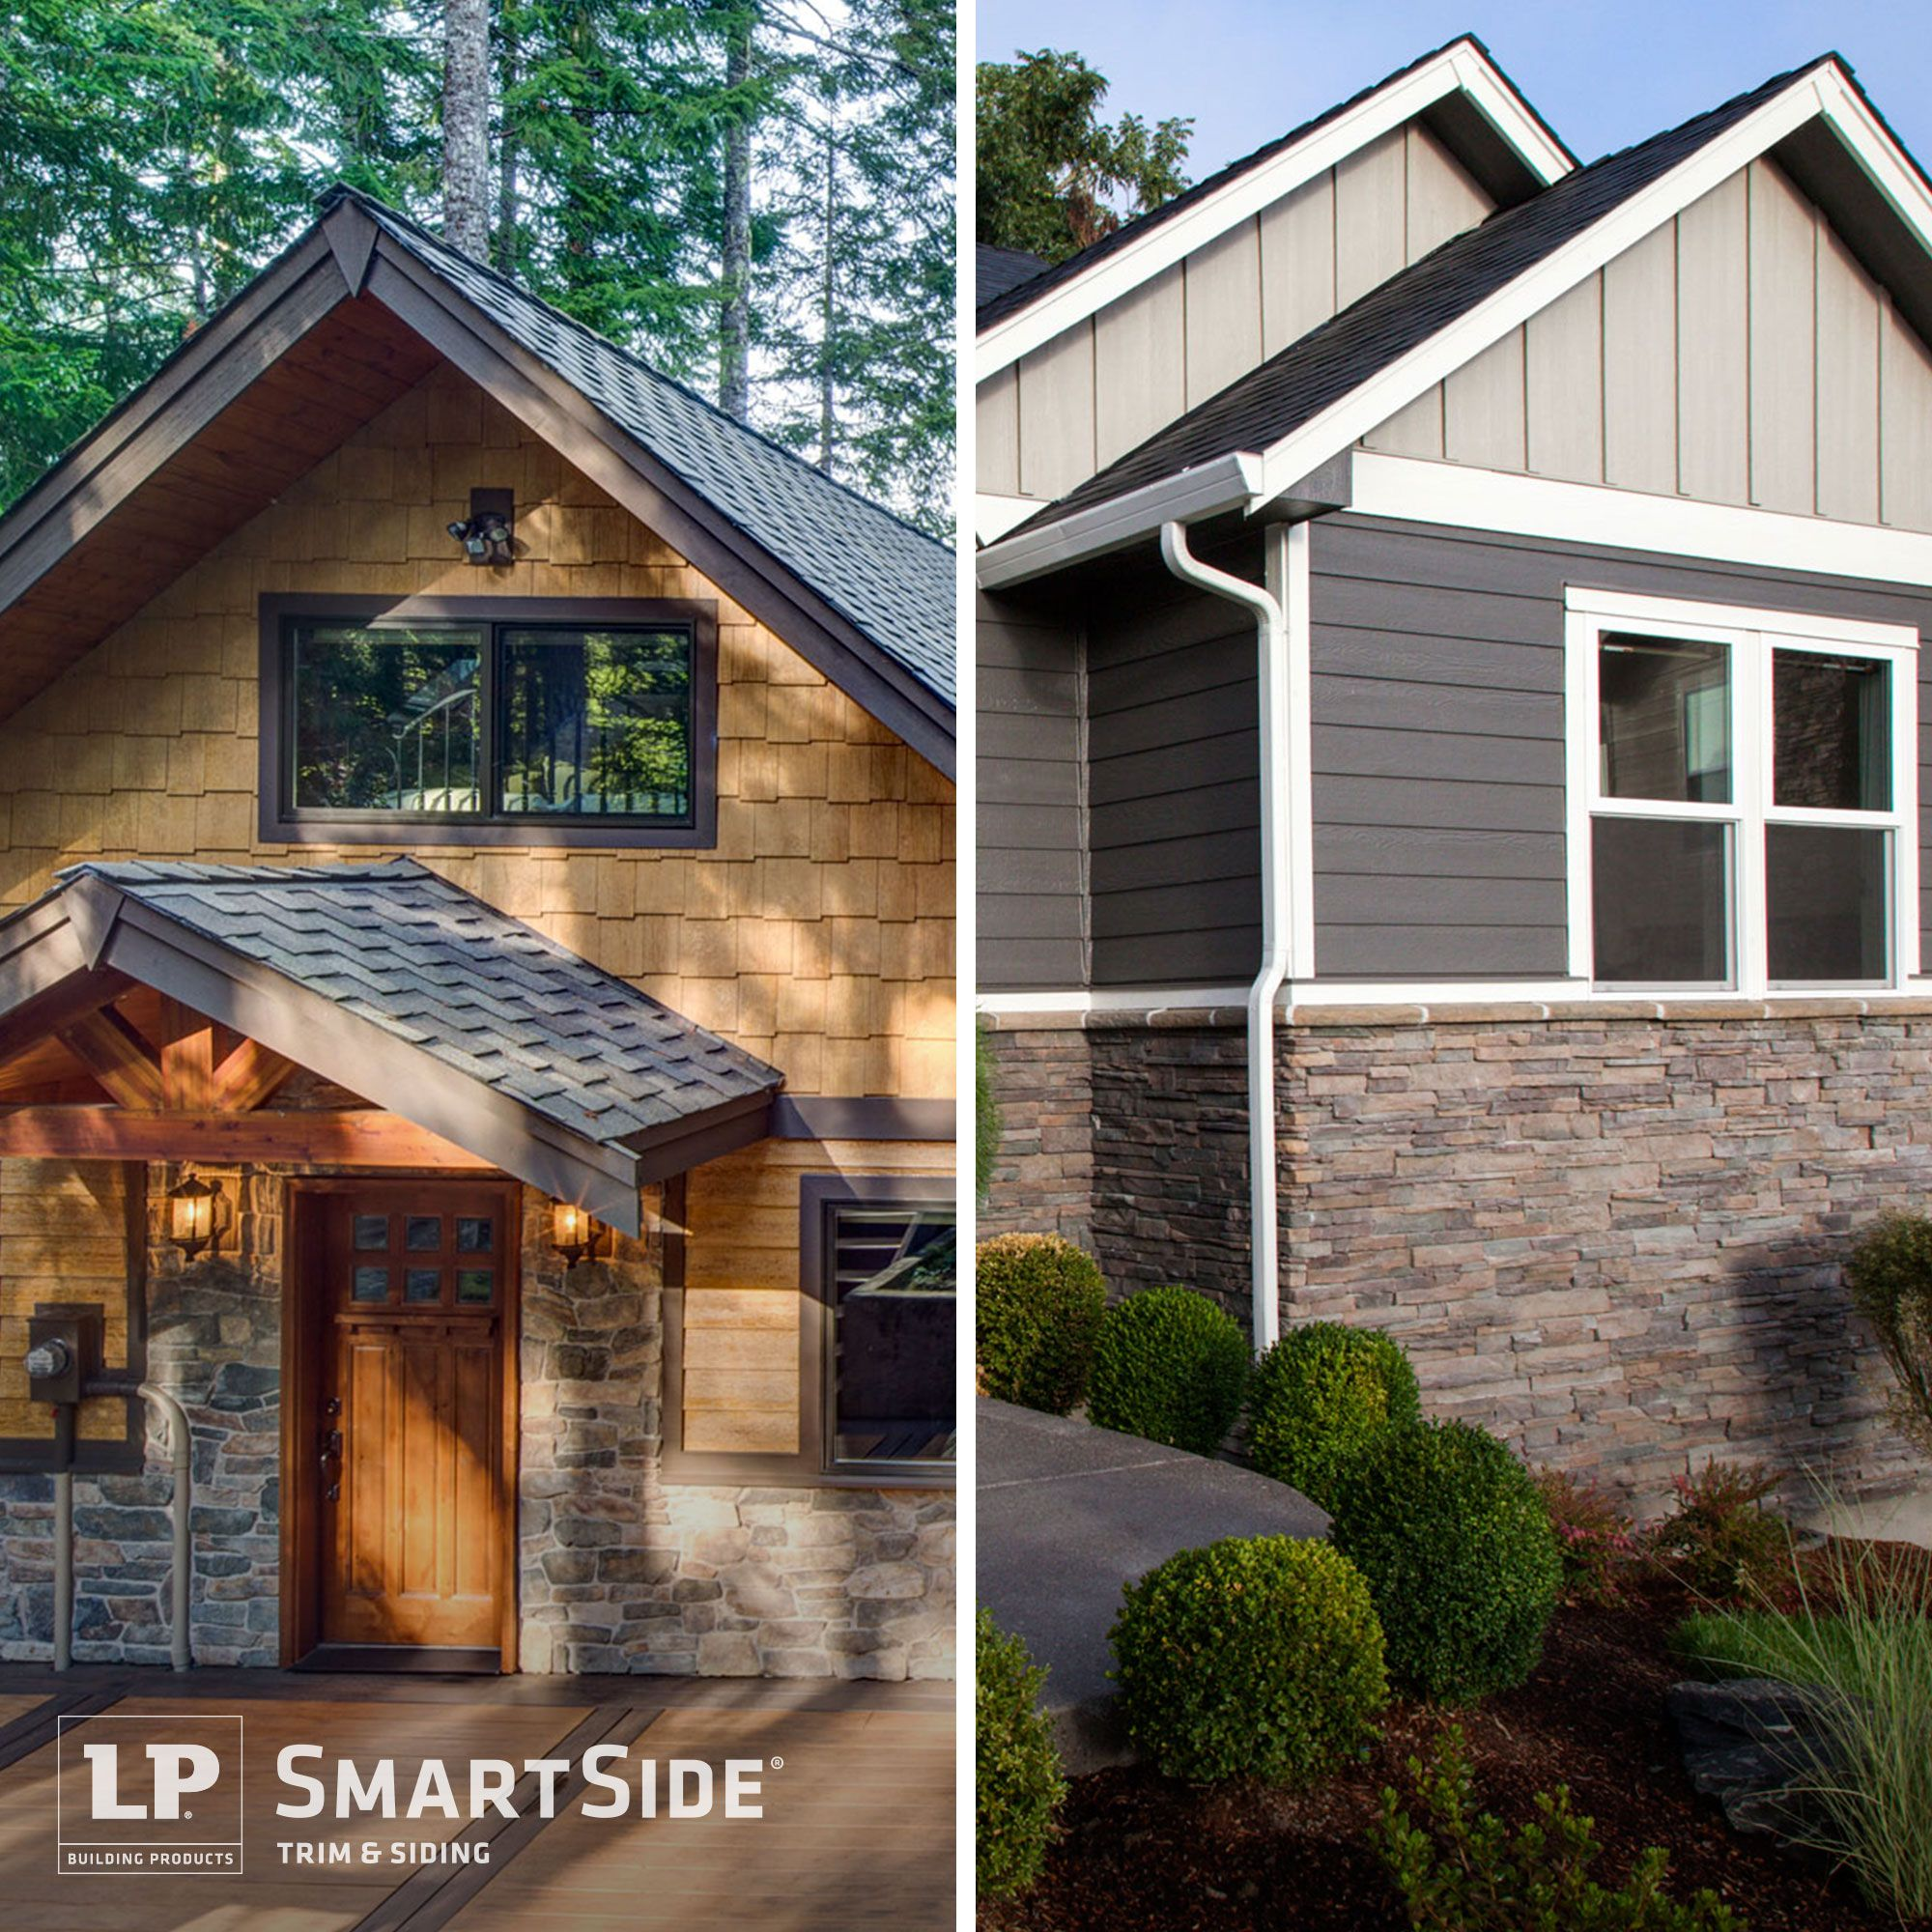 Dare To Compare The Siding And Color Variations On The Exterior Of These Two Homes Which Style Do You Prefer Left O Siding Trim Wood Siding Trim Wood Siding